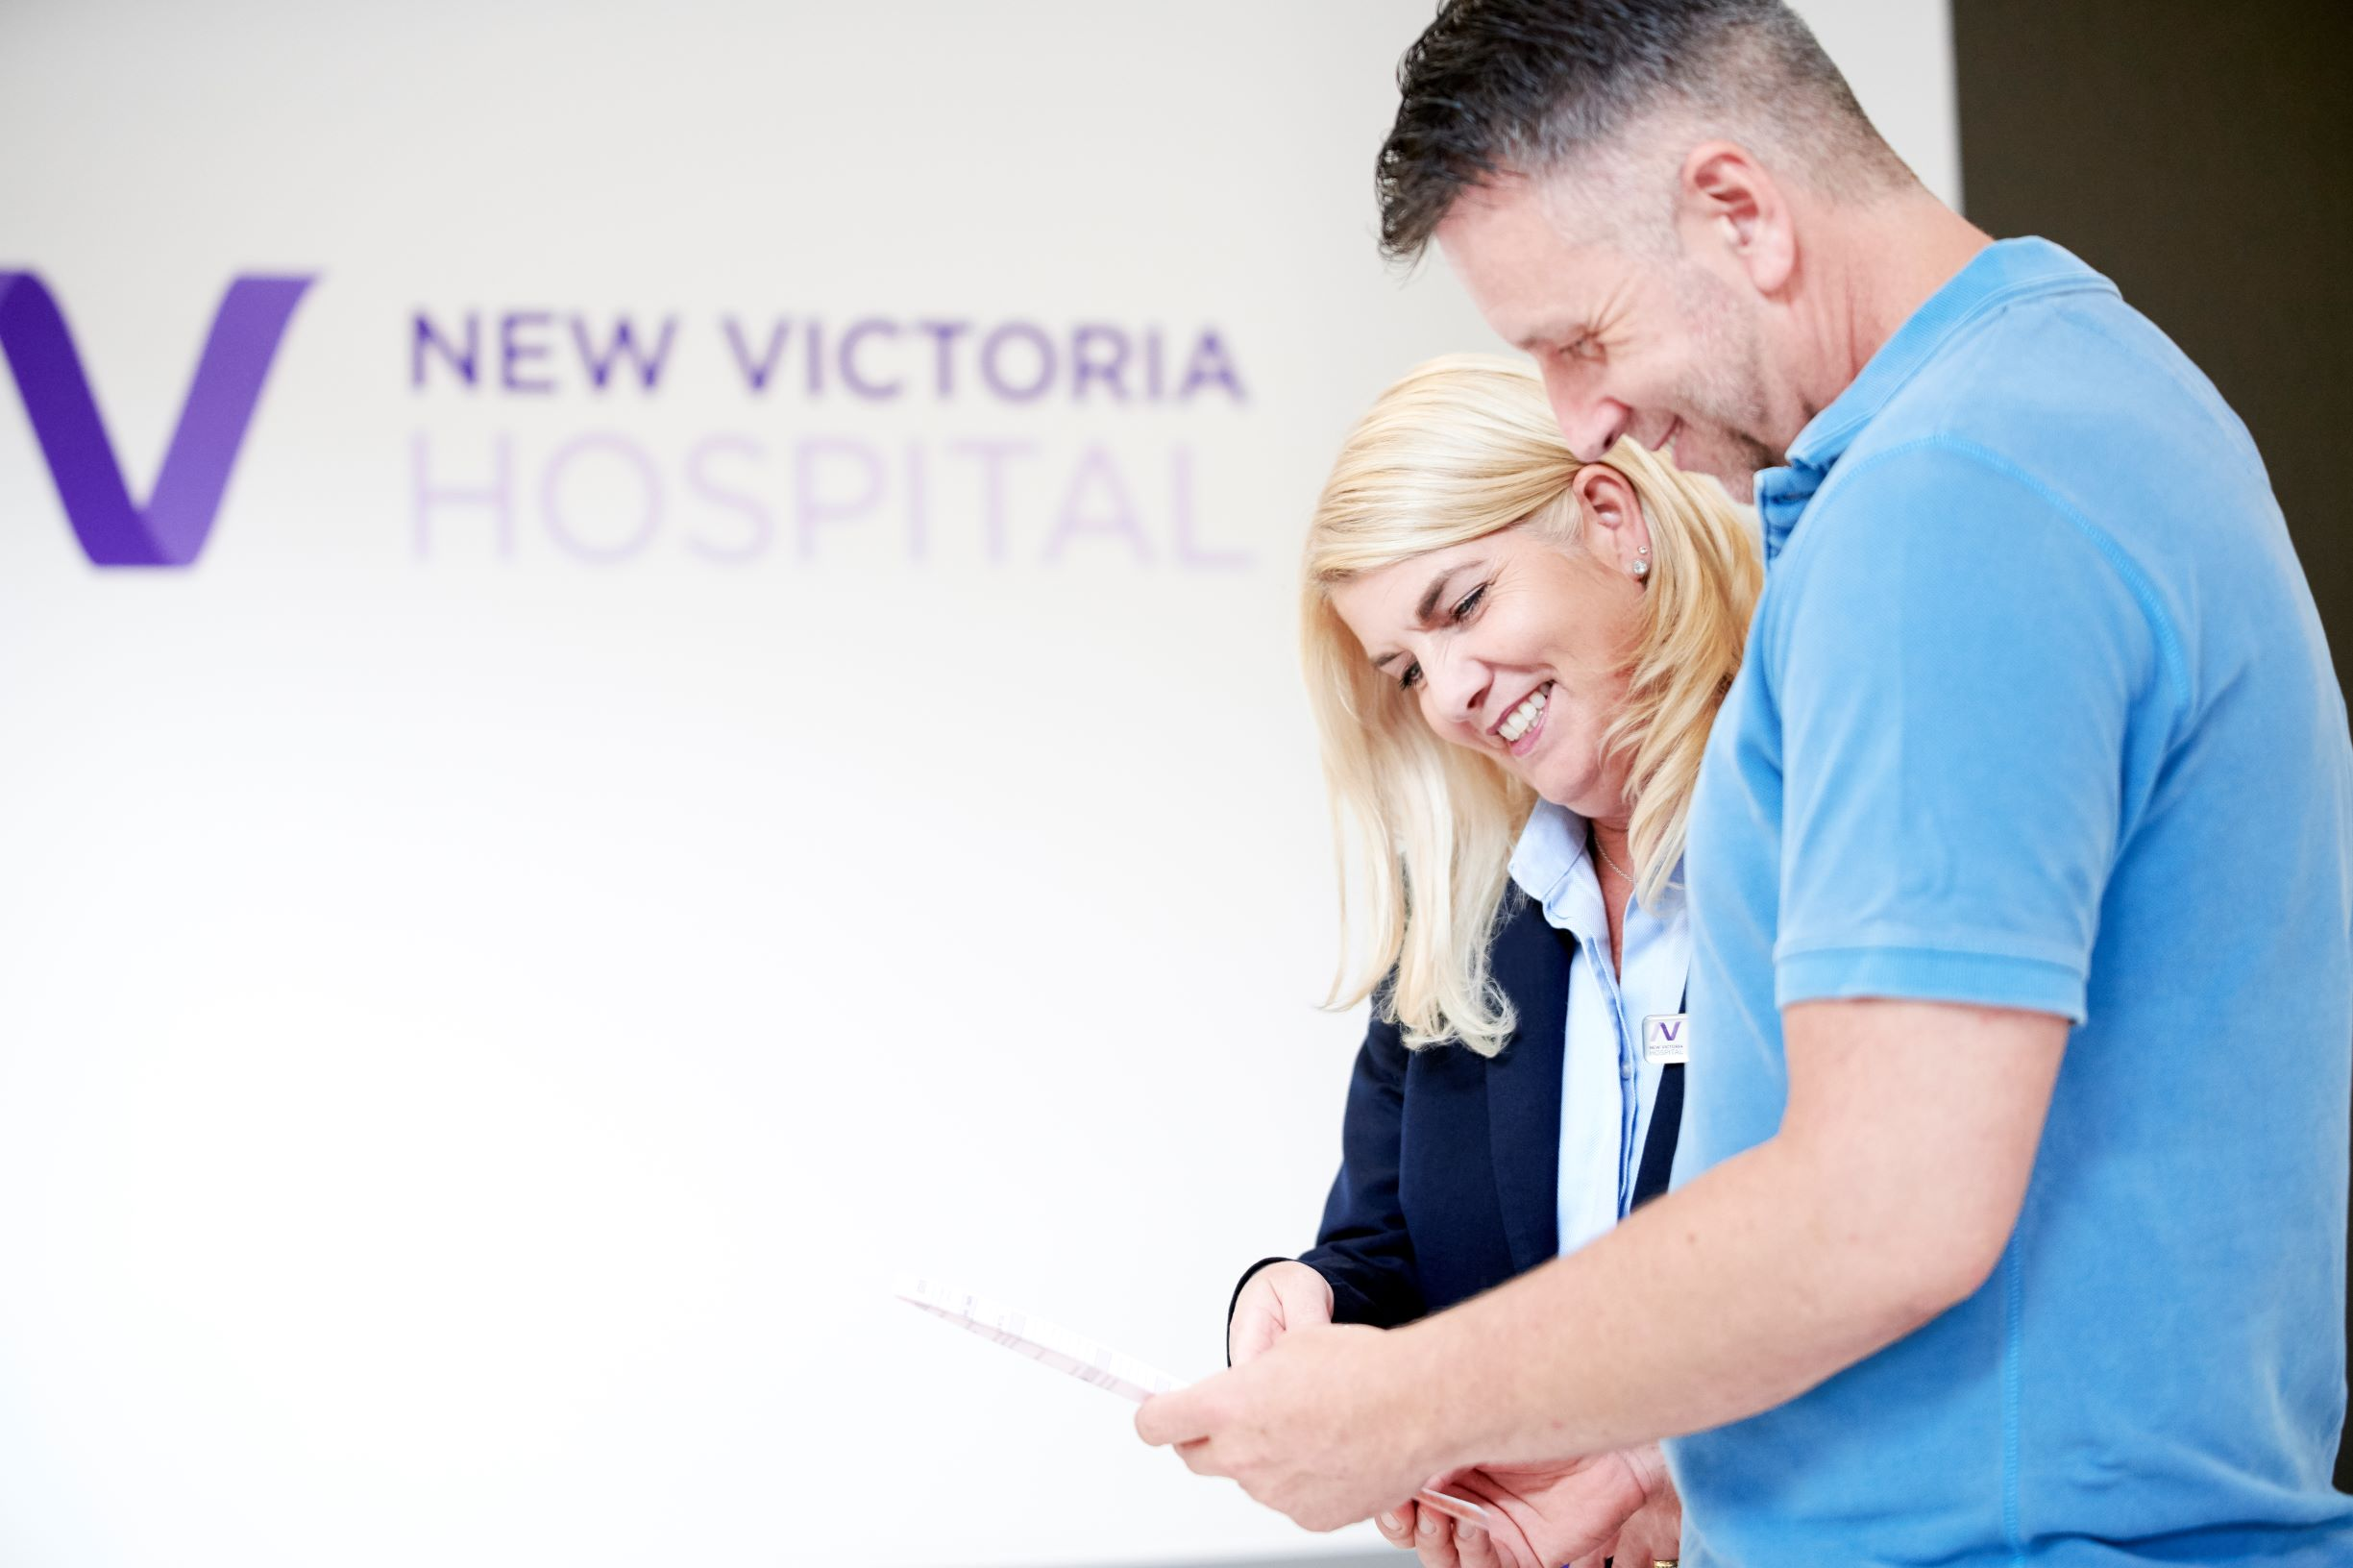 Get to Know New Victoria Hospital